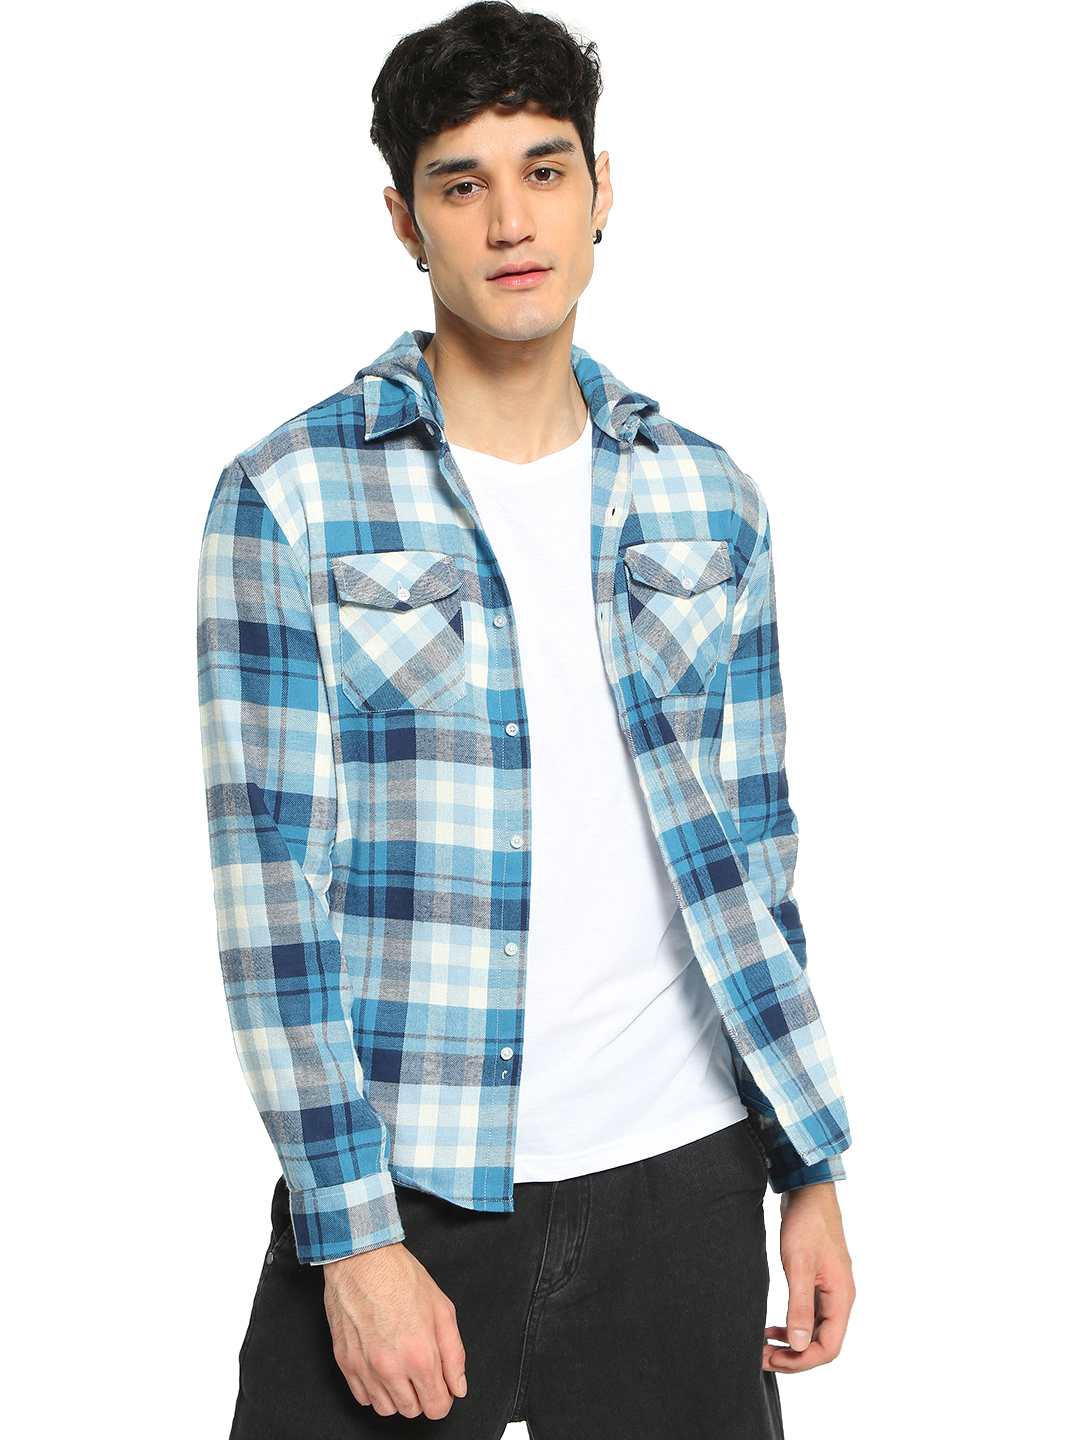 TRUE RUG Multi Woven Flannel Check Hooded Shirt 1